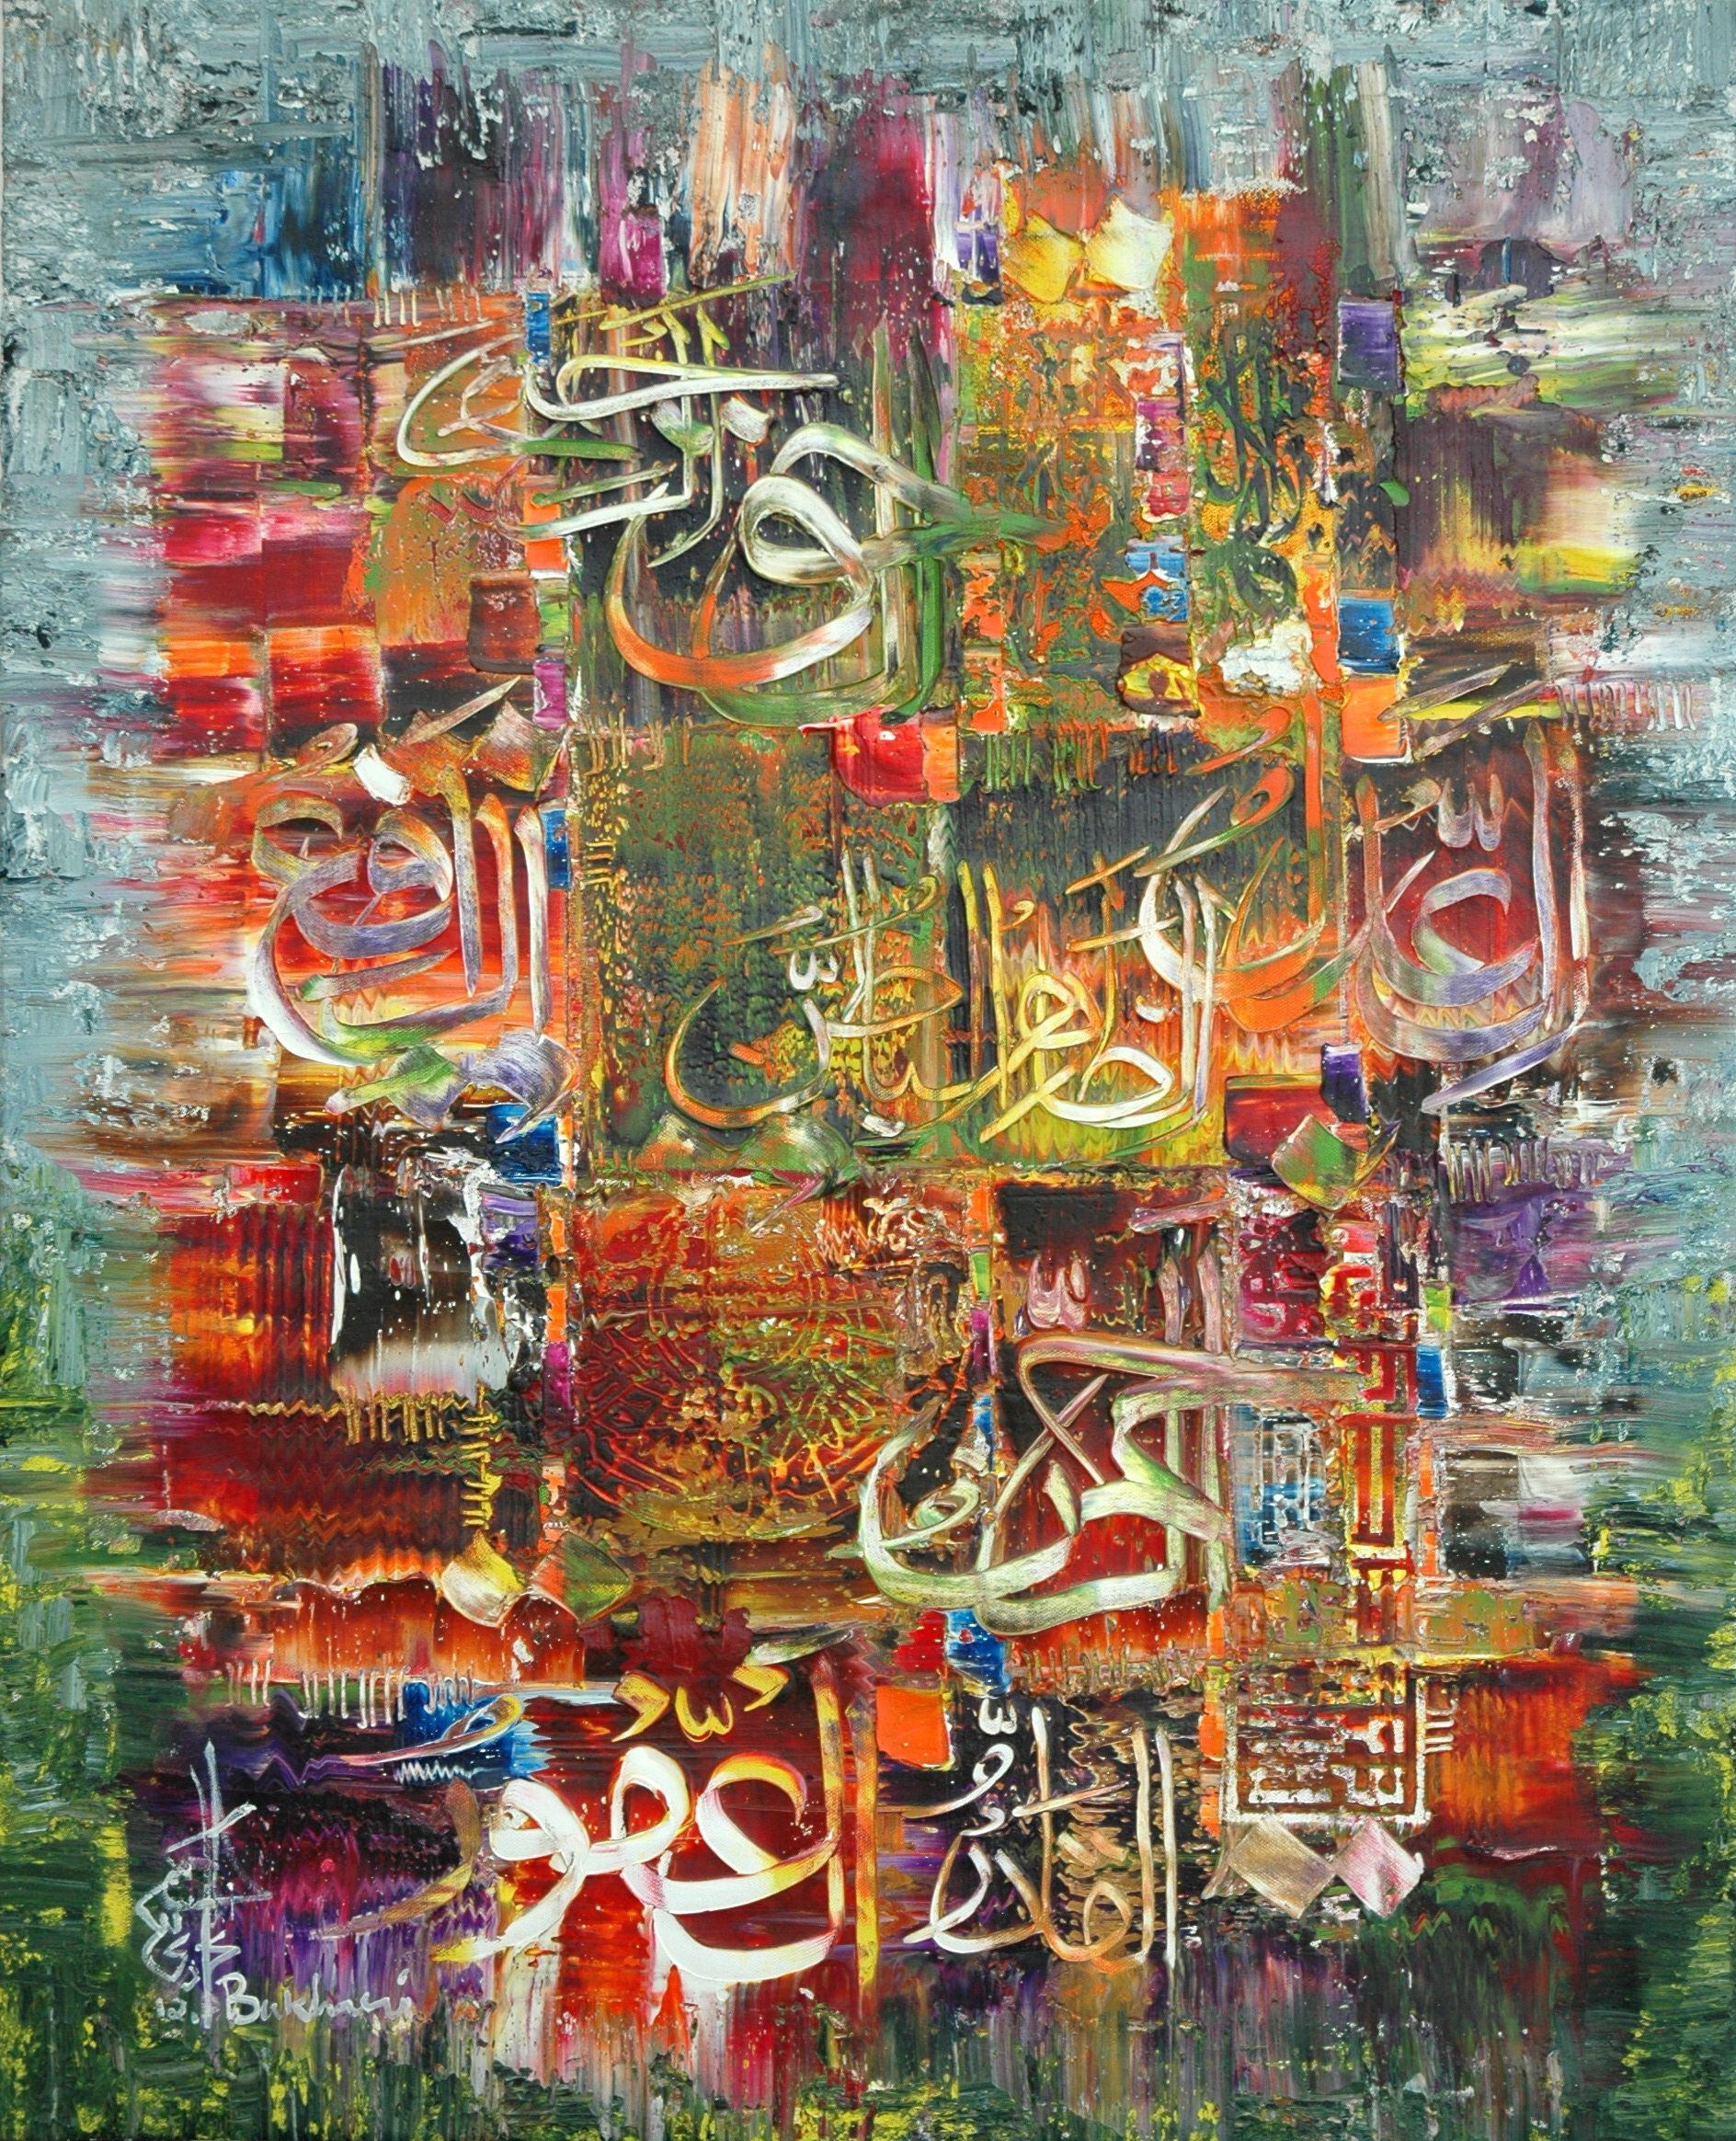 D Painting Exhibition In Dubai : July glory art gallery dubai خط calligraphy